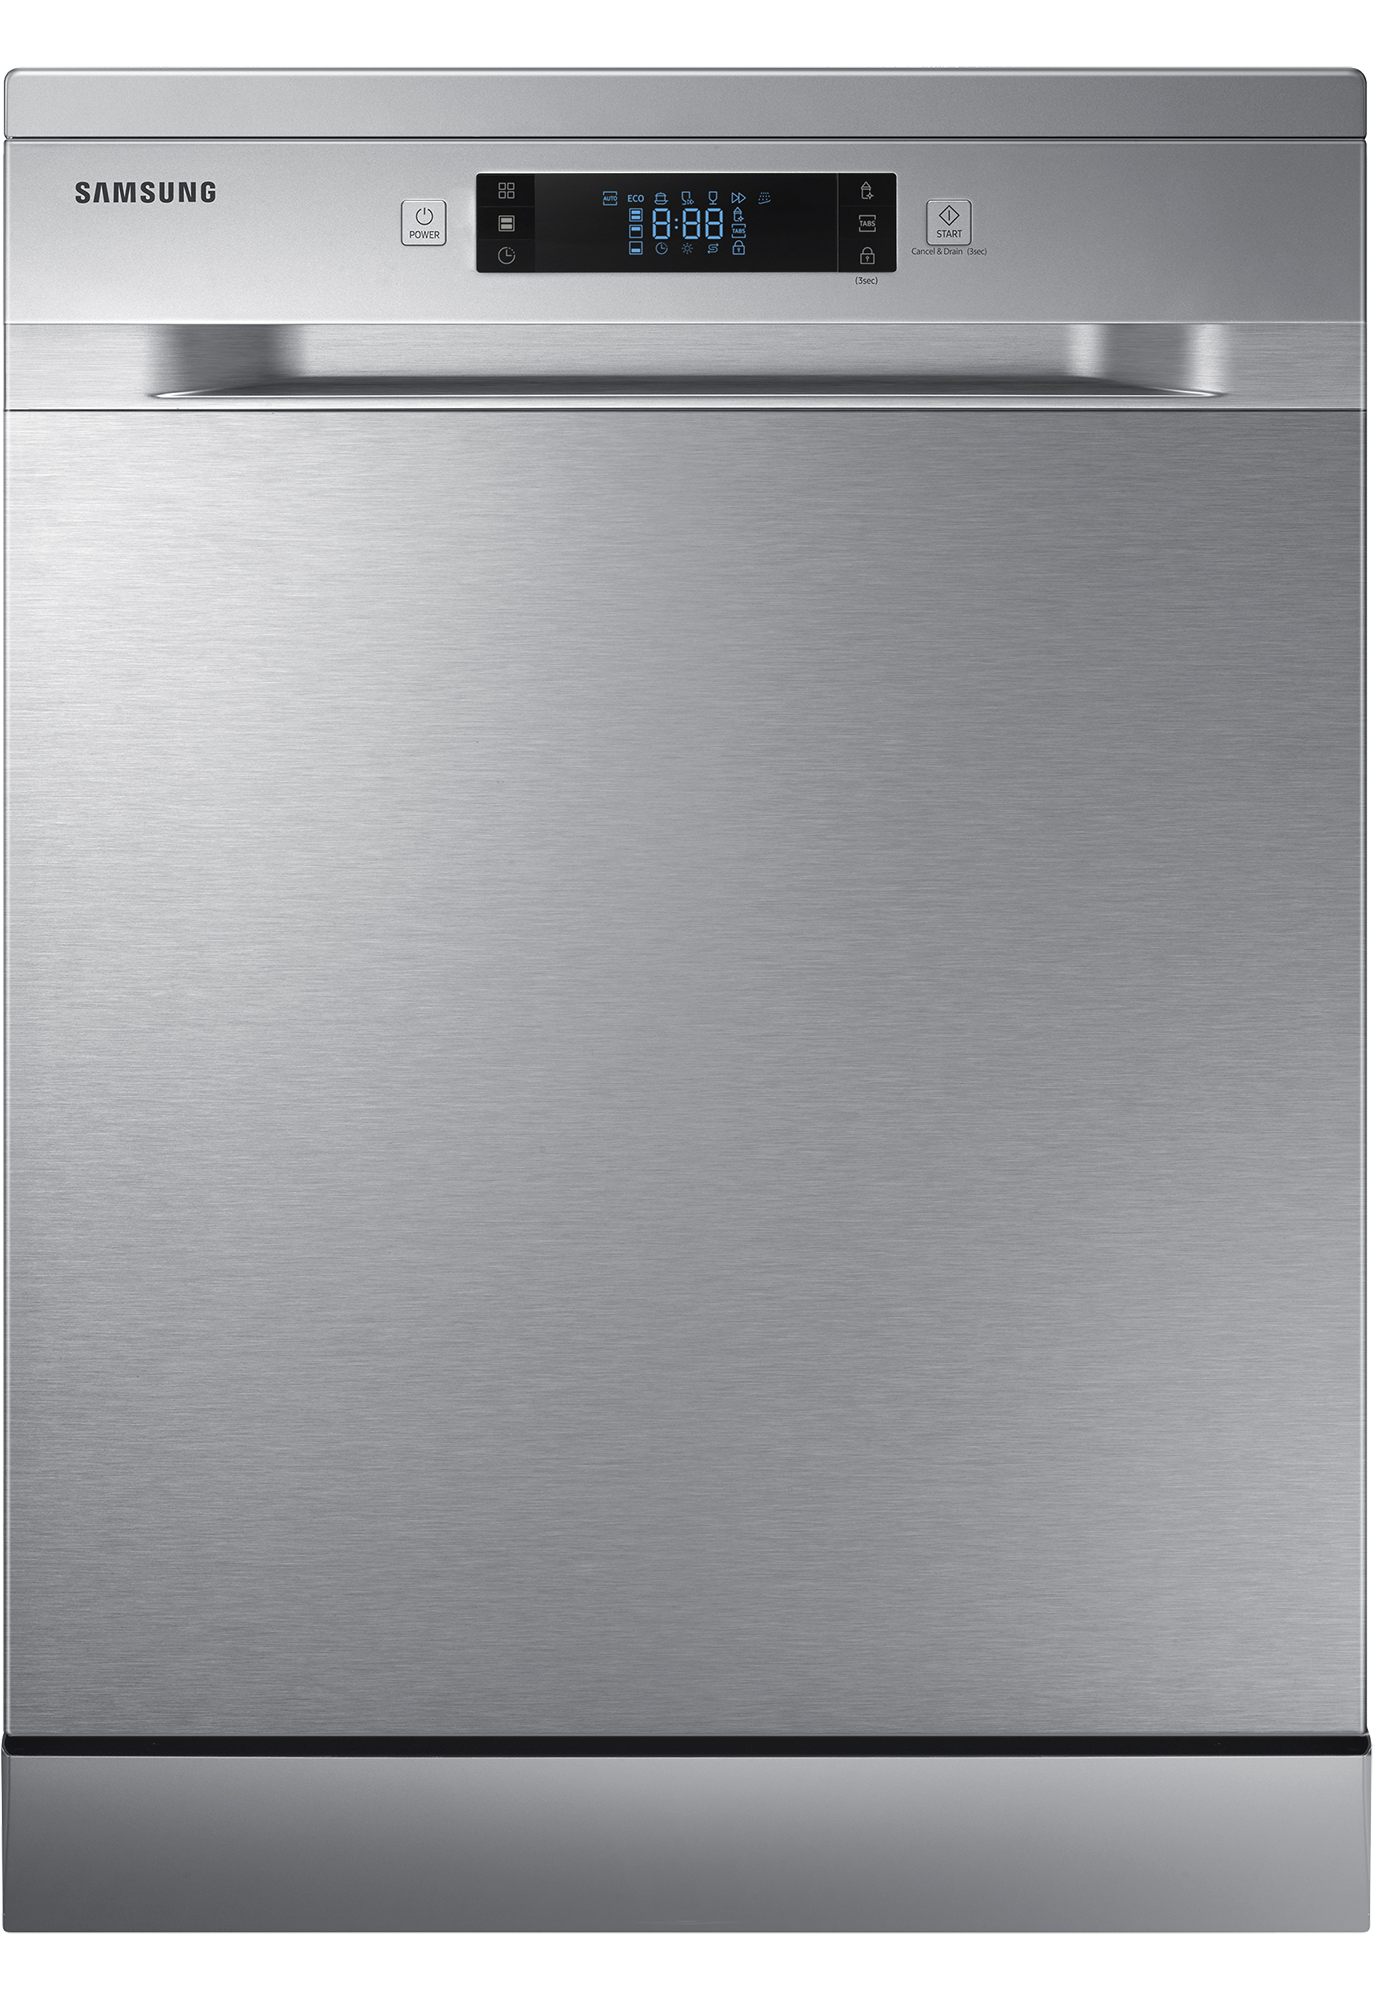 Samsung Freestanding Full Size Dishwasher With 14 Place Settings